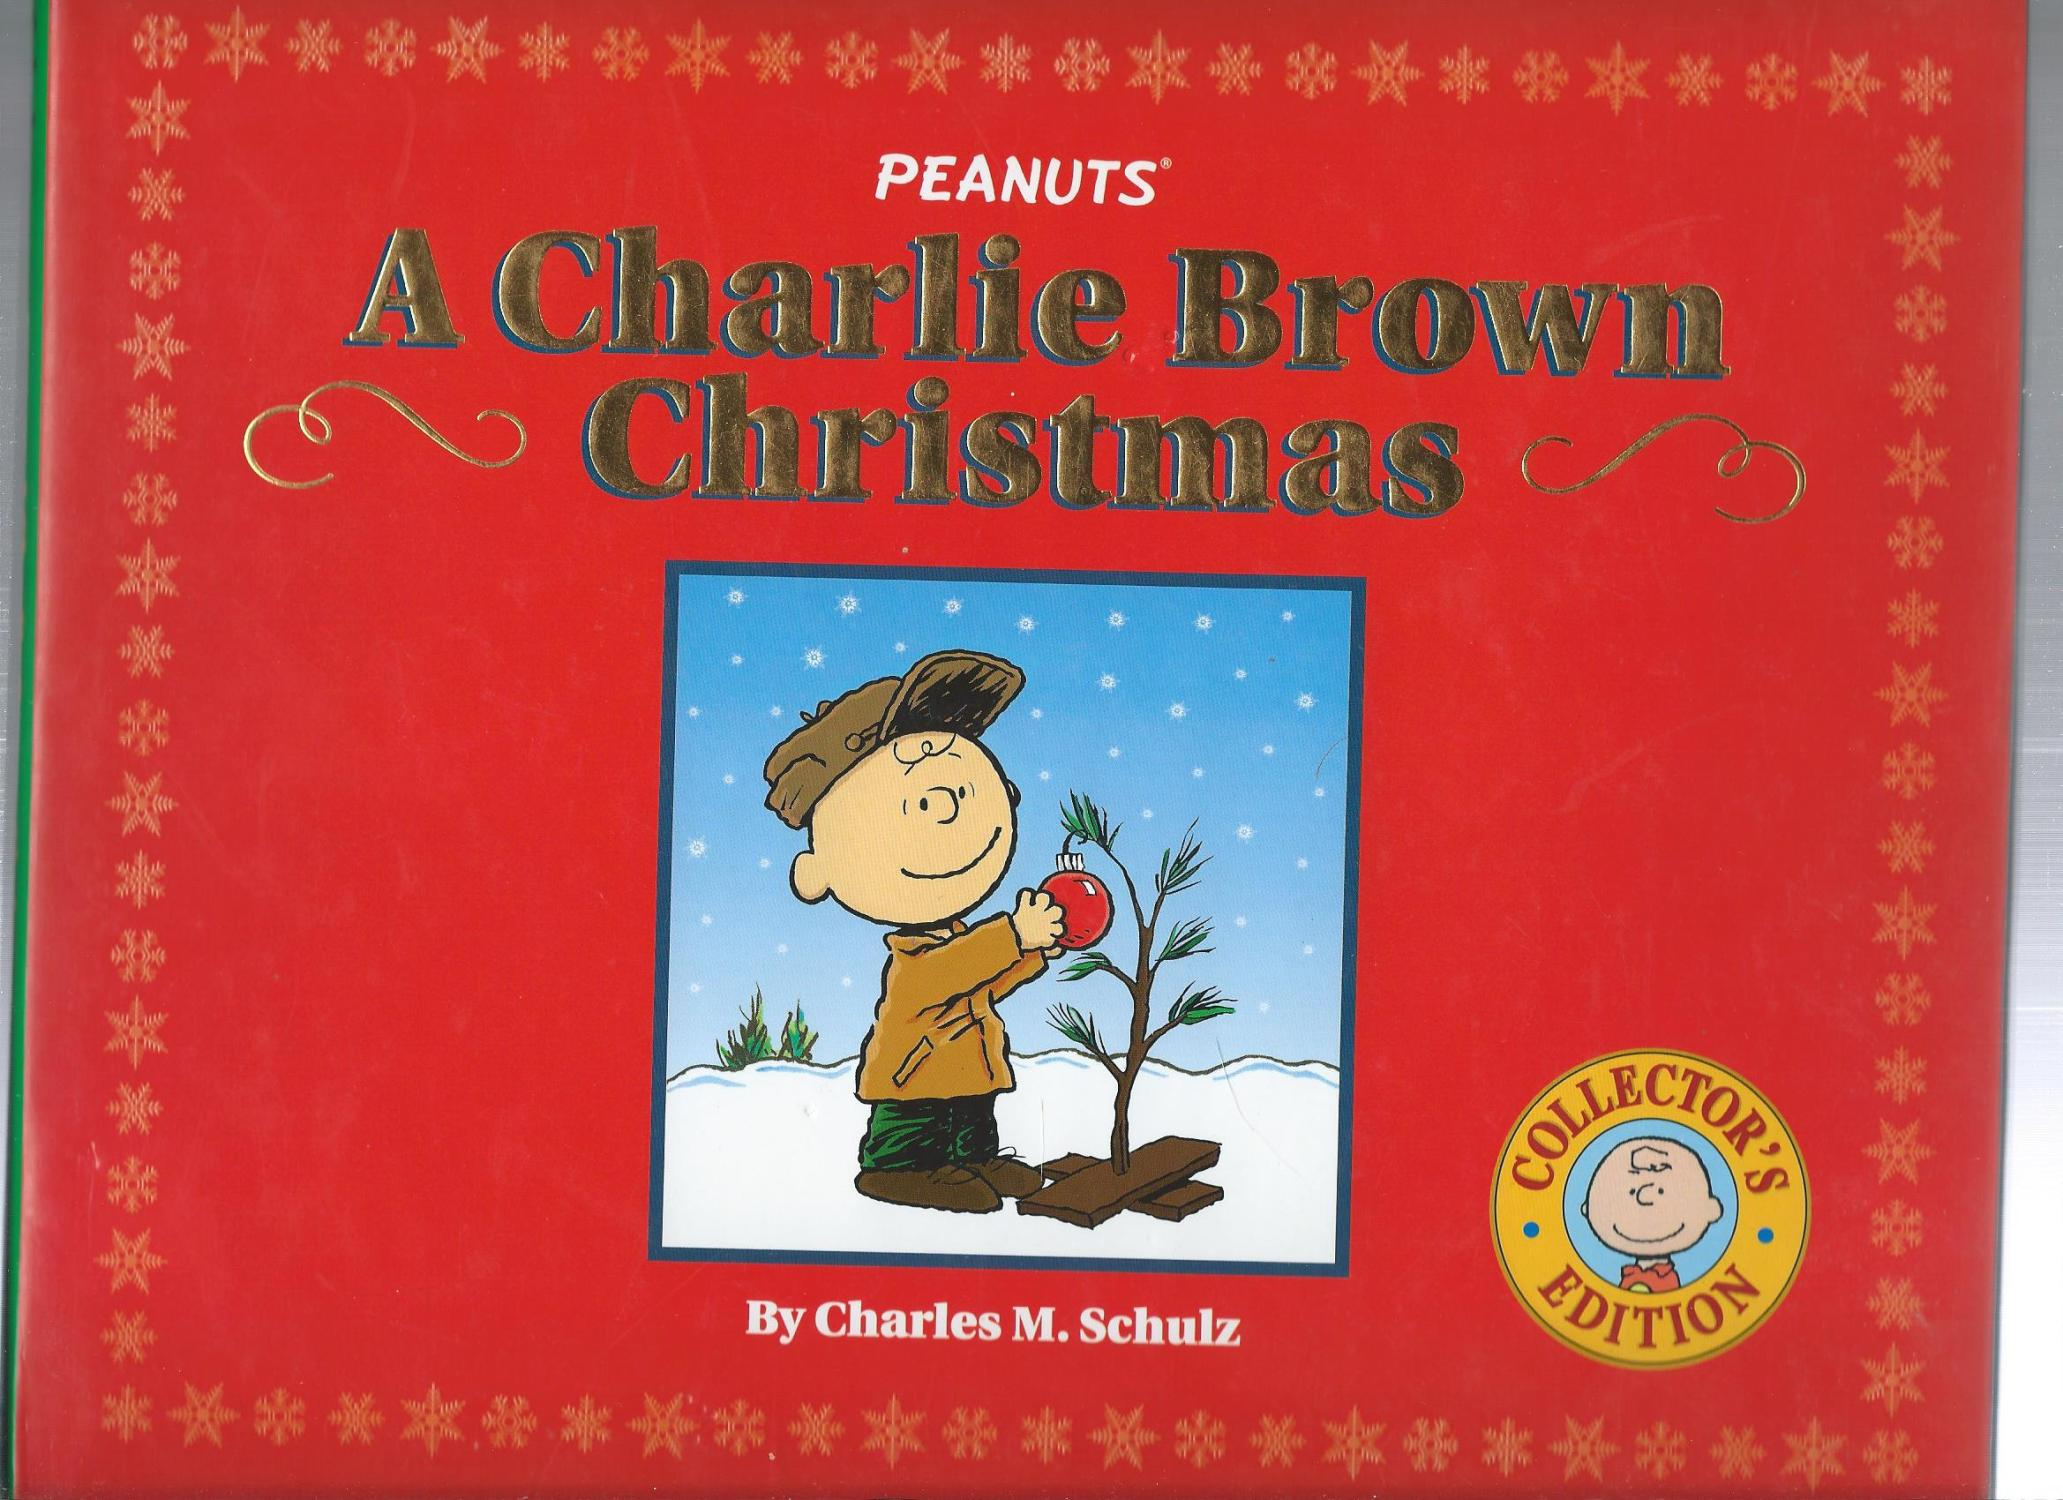 A Charlie Brown Christmas Book.A Charlie Brown Christmas Collectors Edition